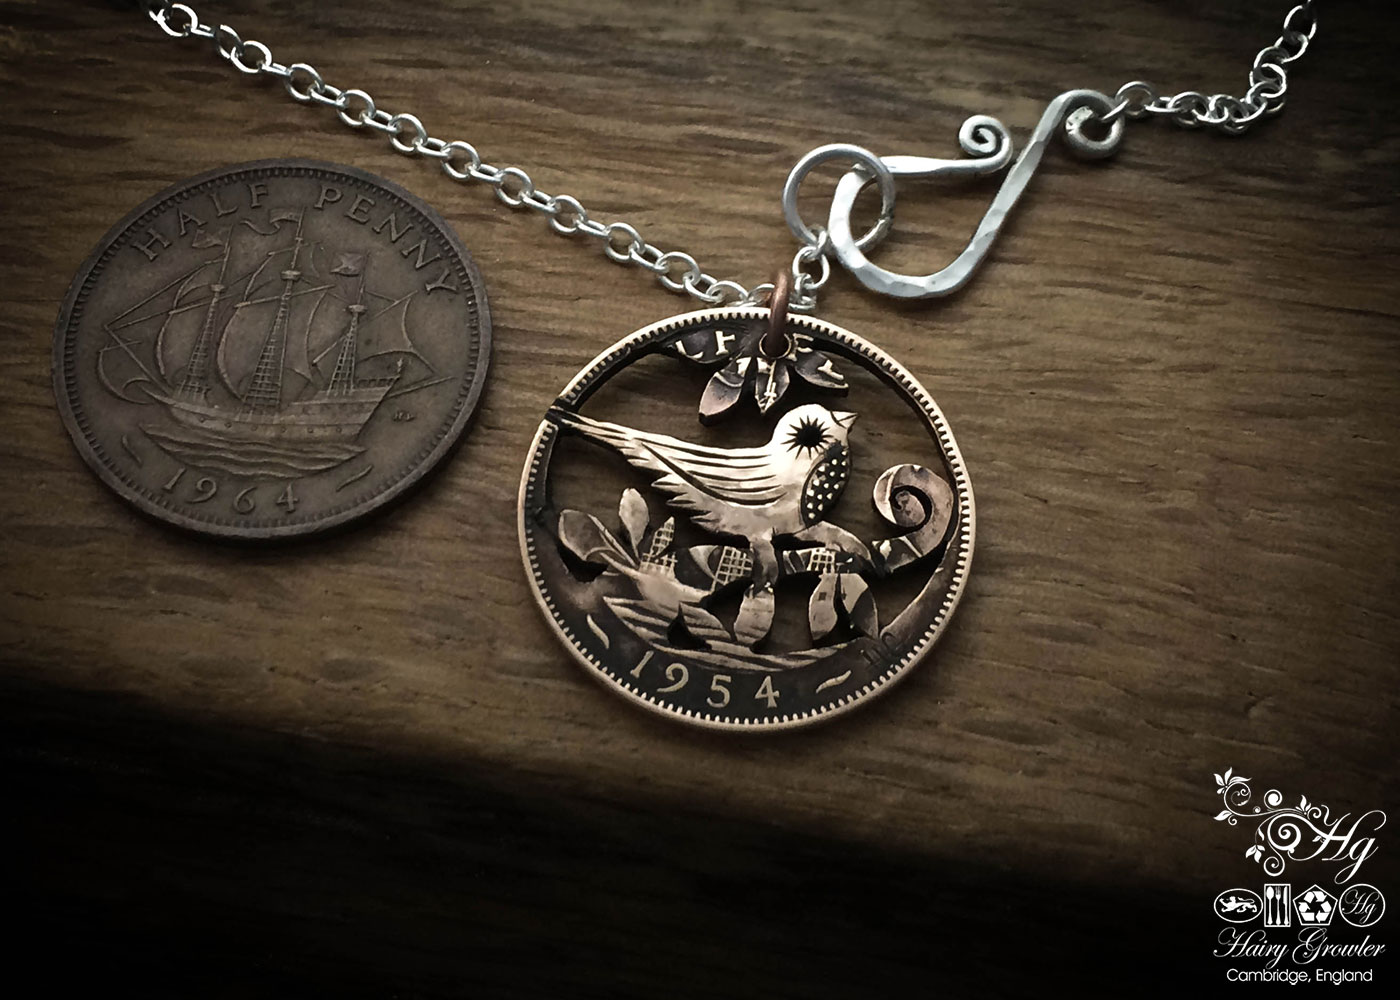 Handcrafted and recycled little bird coin pendant necklace